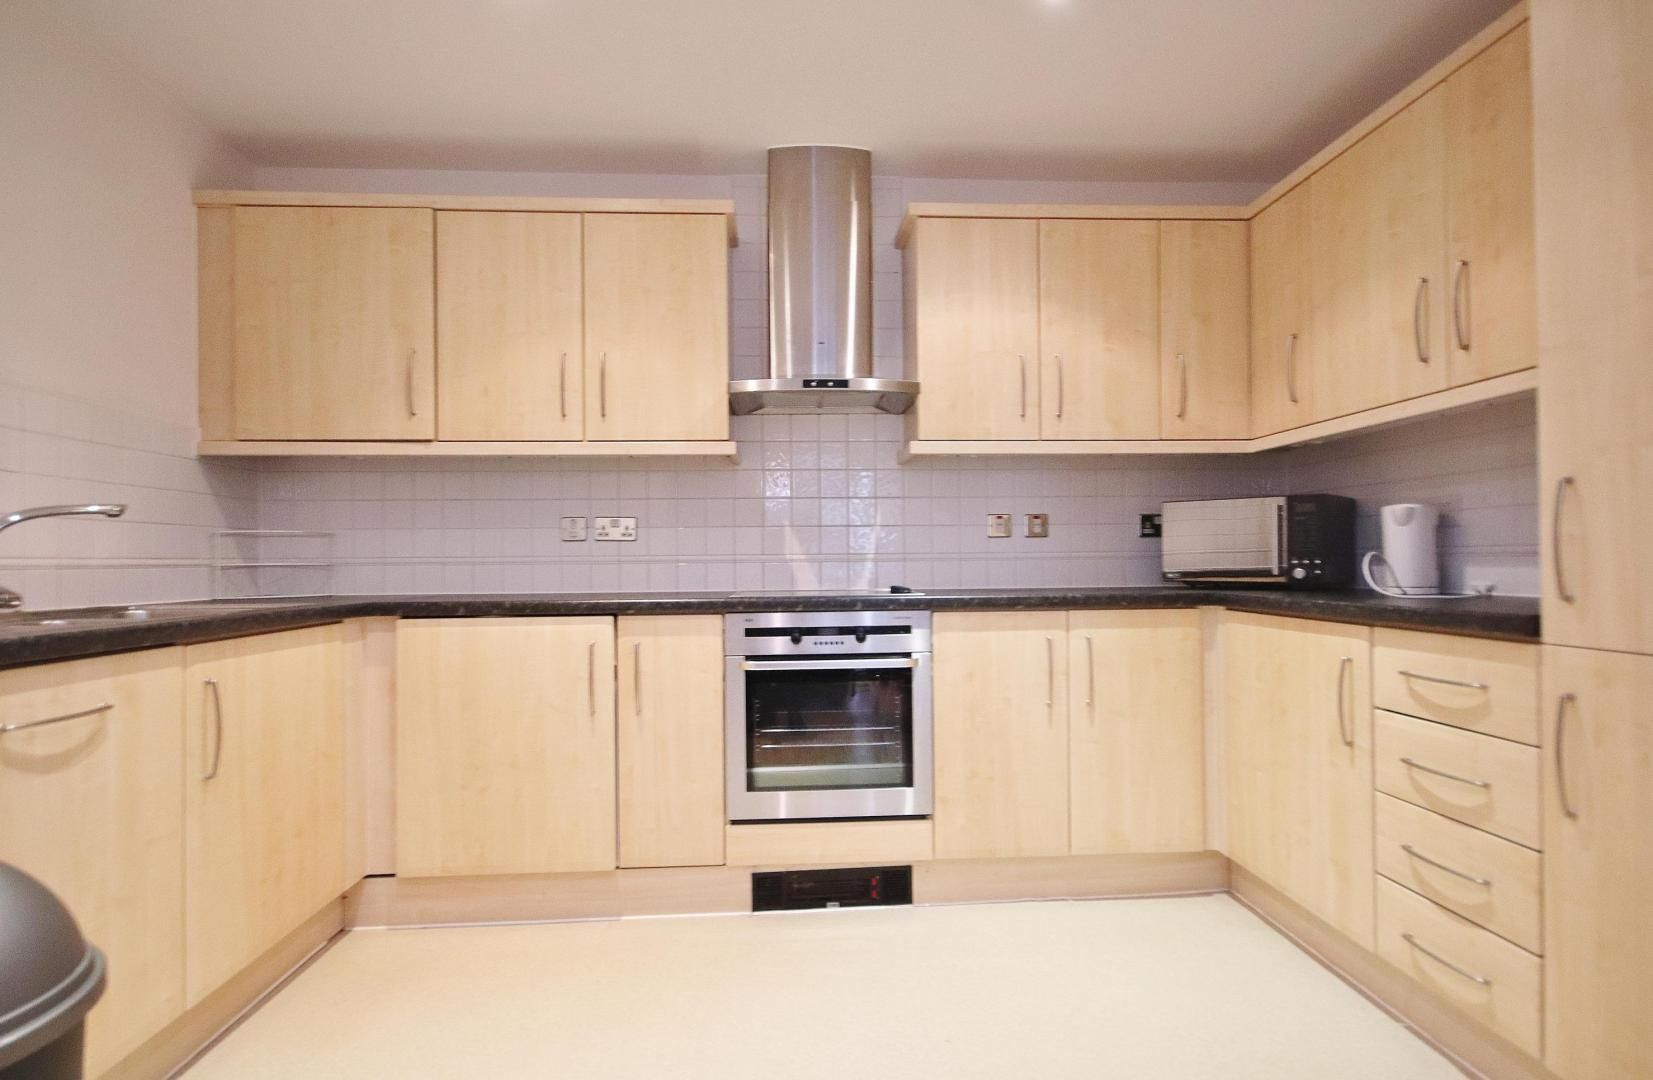 2 bed flat to rent in Boardwalk Place, E14